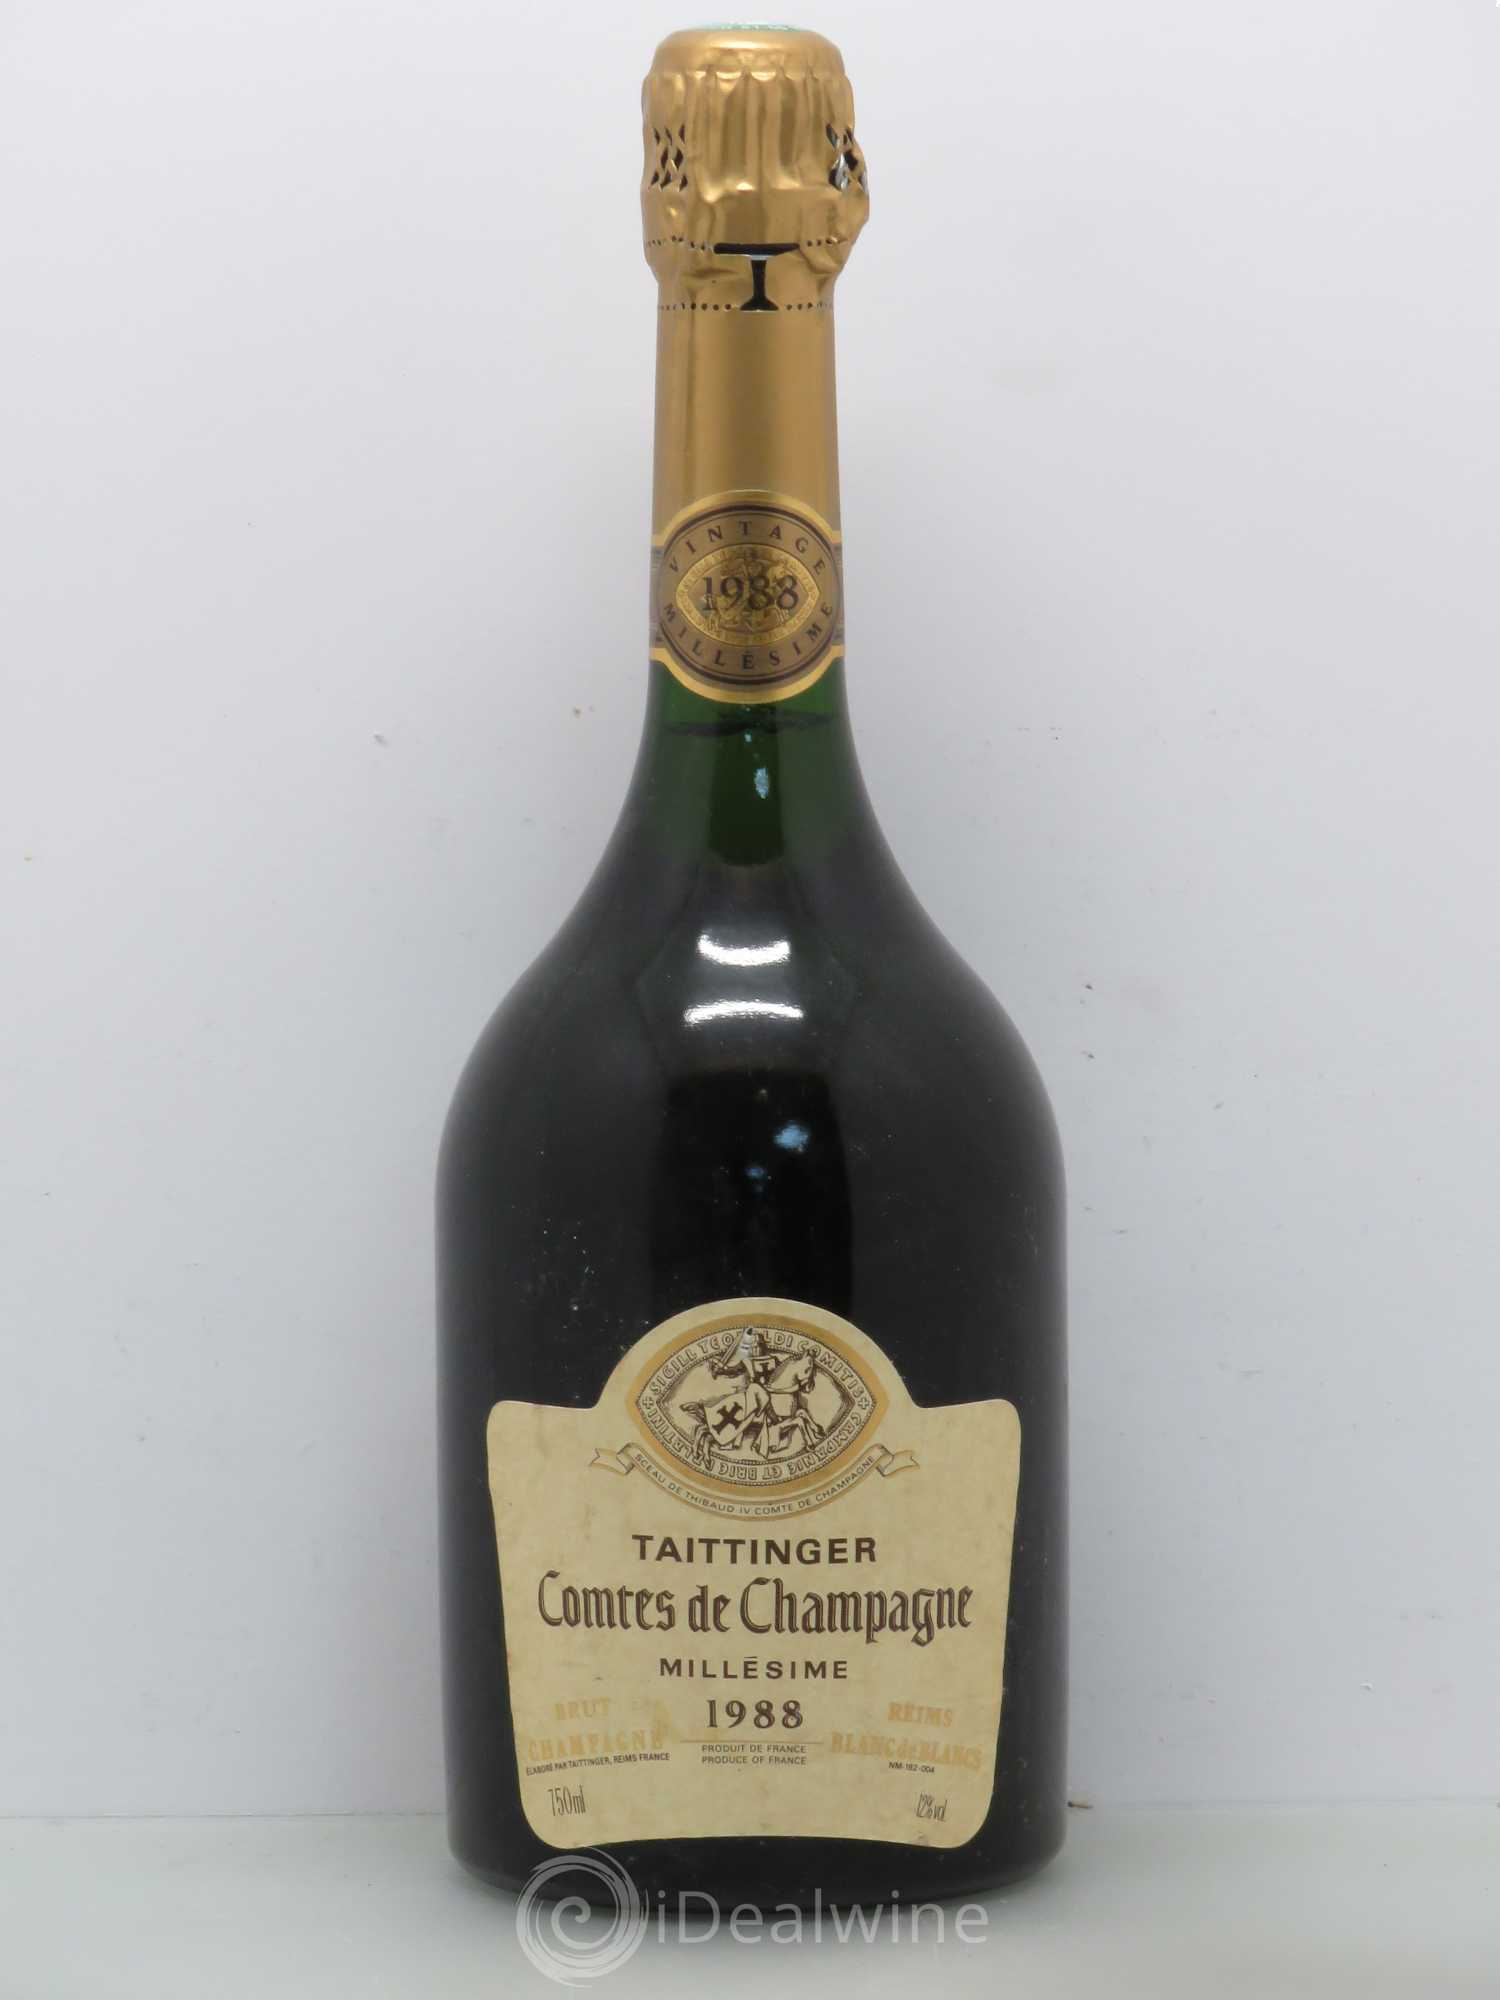 acheter comtes de champagne champagne taittinger 1988 lot 1386. Black Bedroom Furniture Sets. Home Design Ideas